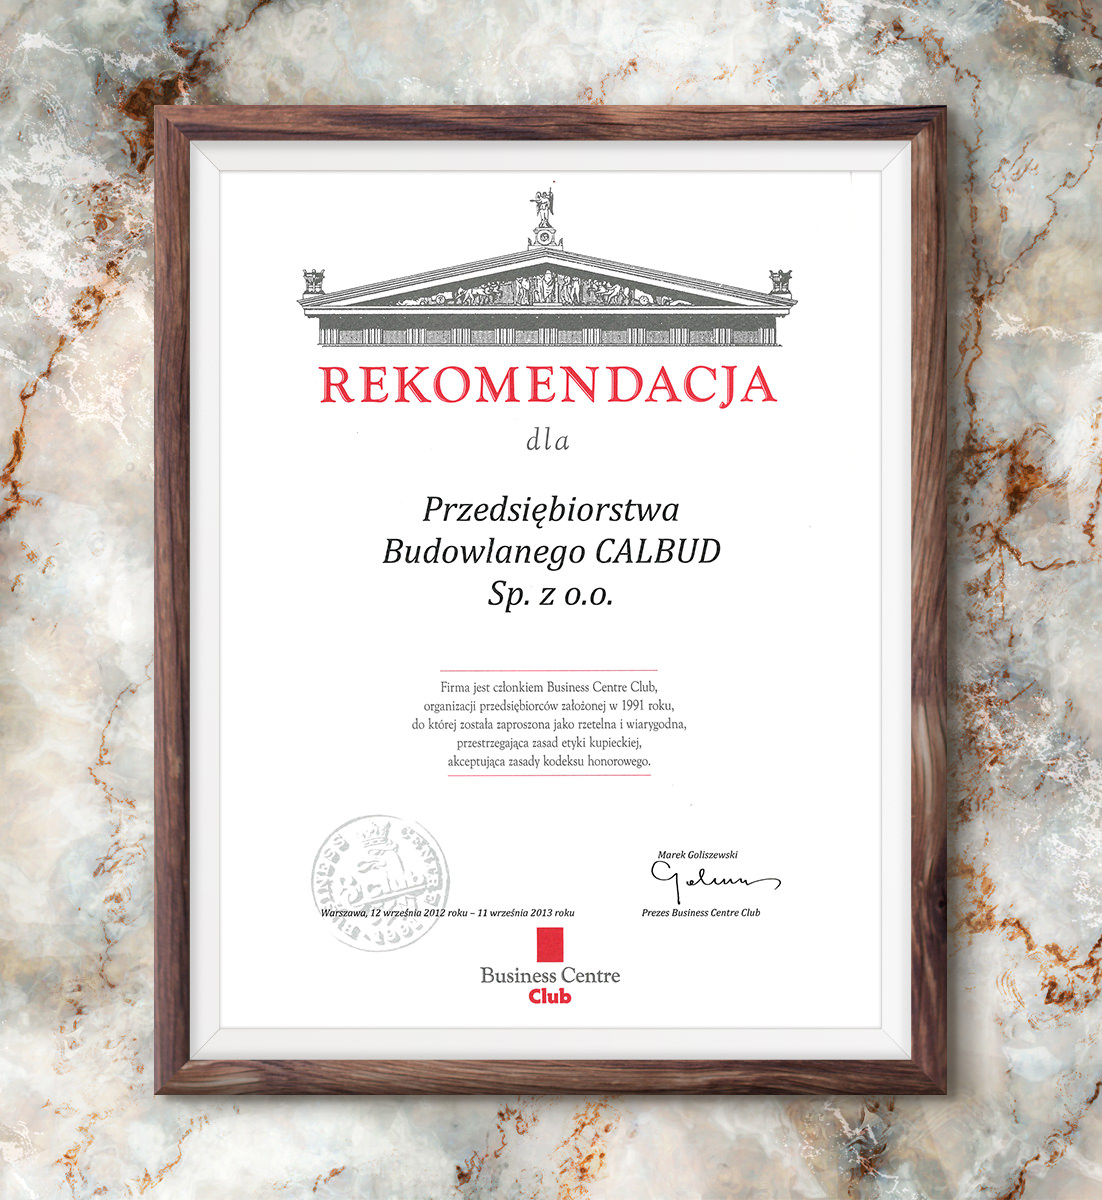 Rekomendacja Business Centre Club dla P.B. CALBUD Sp. z o.o. | 2012